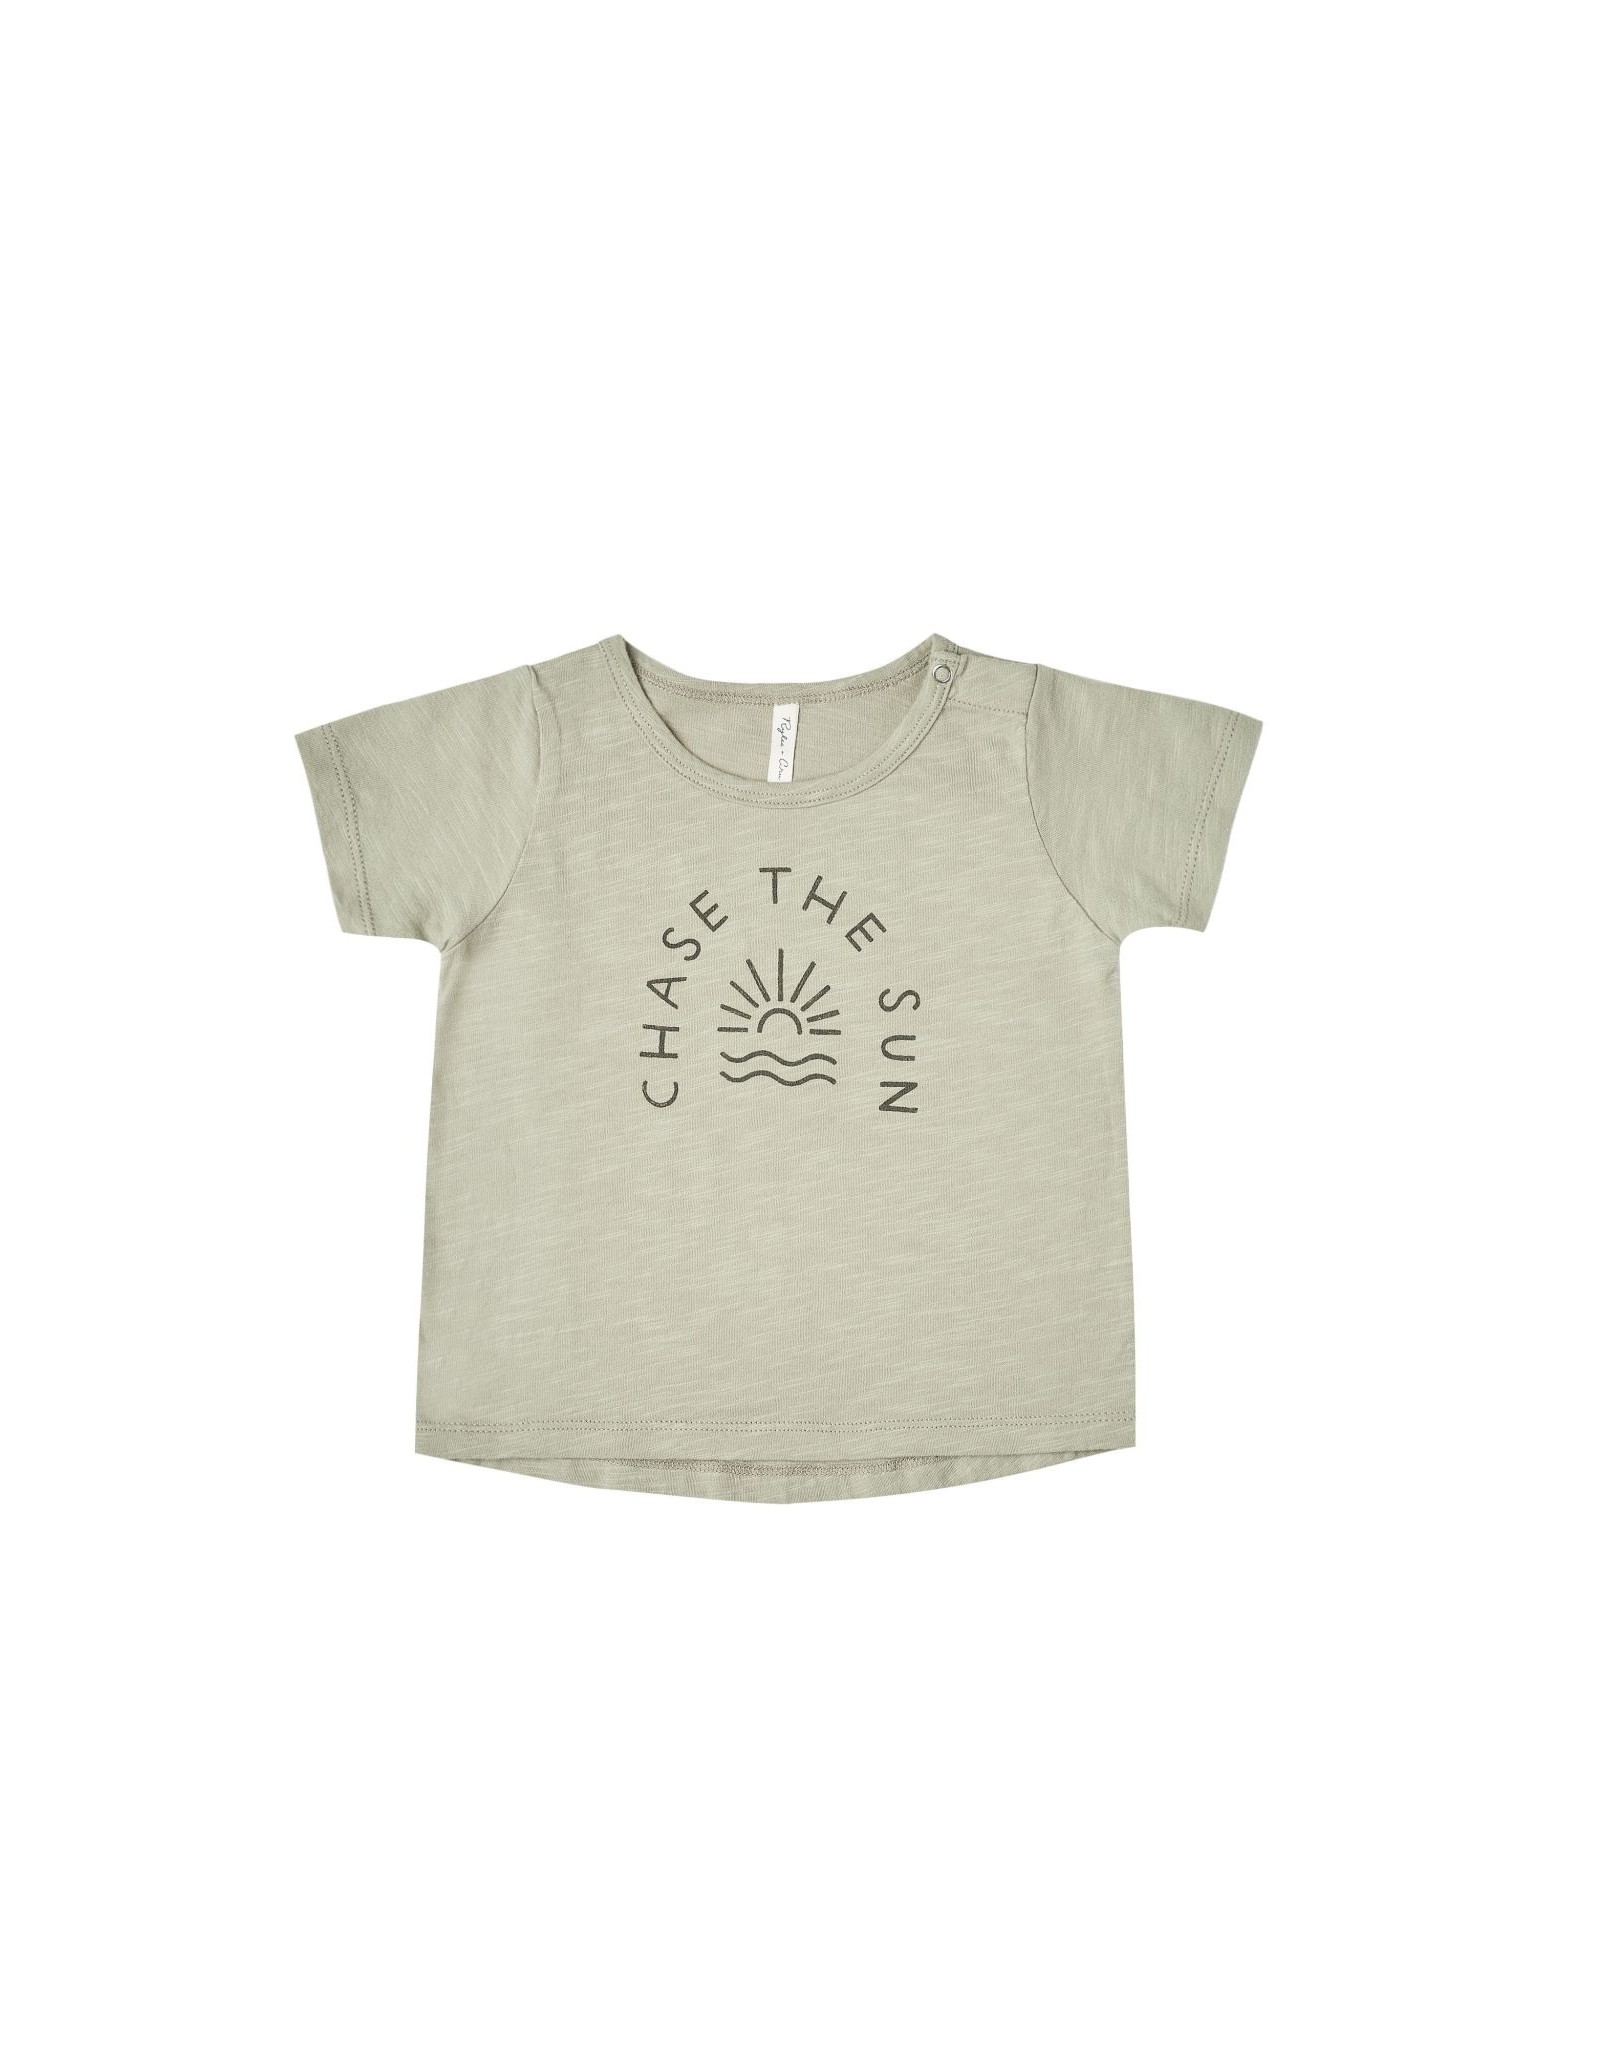 Rylee and Cru chase the sun tee